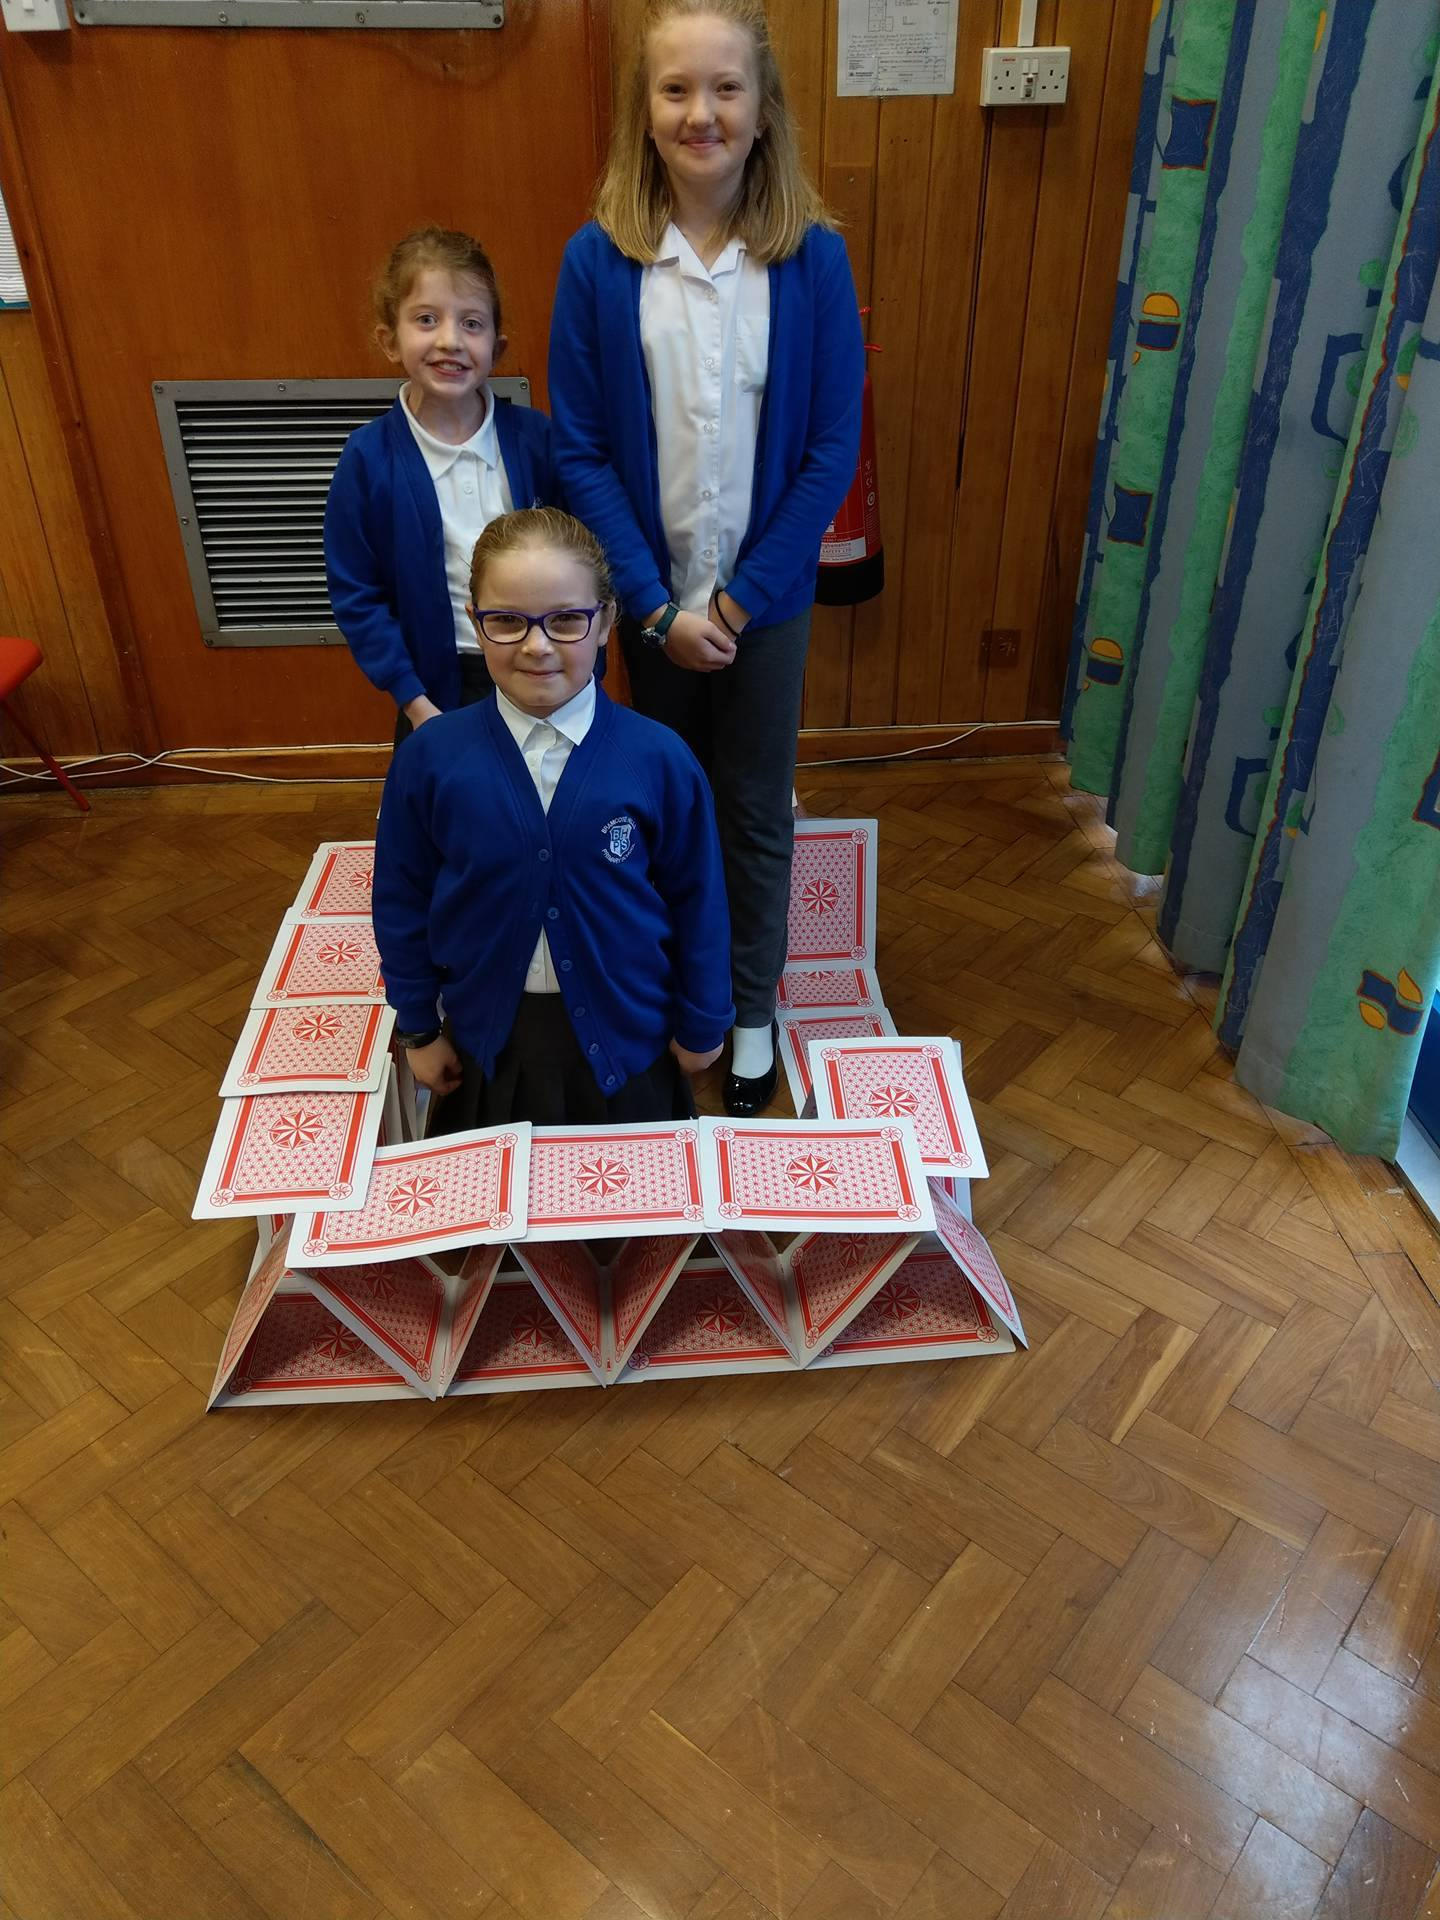 Castle for 3 made of cards.